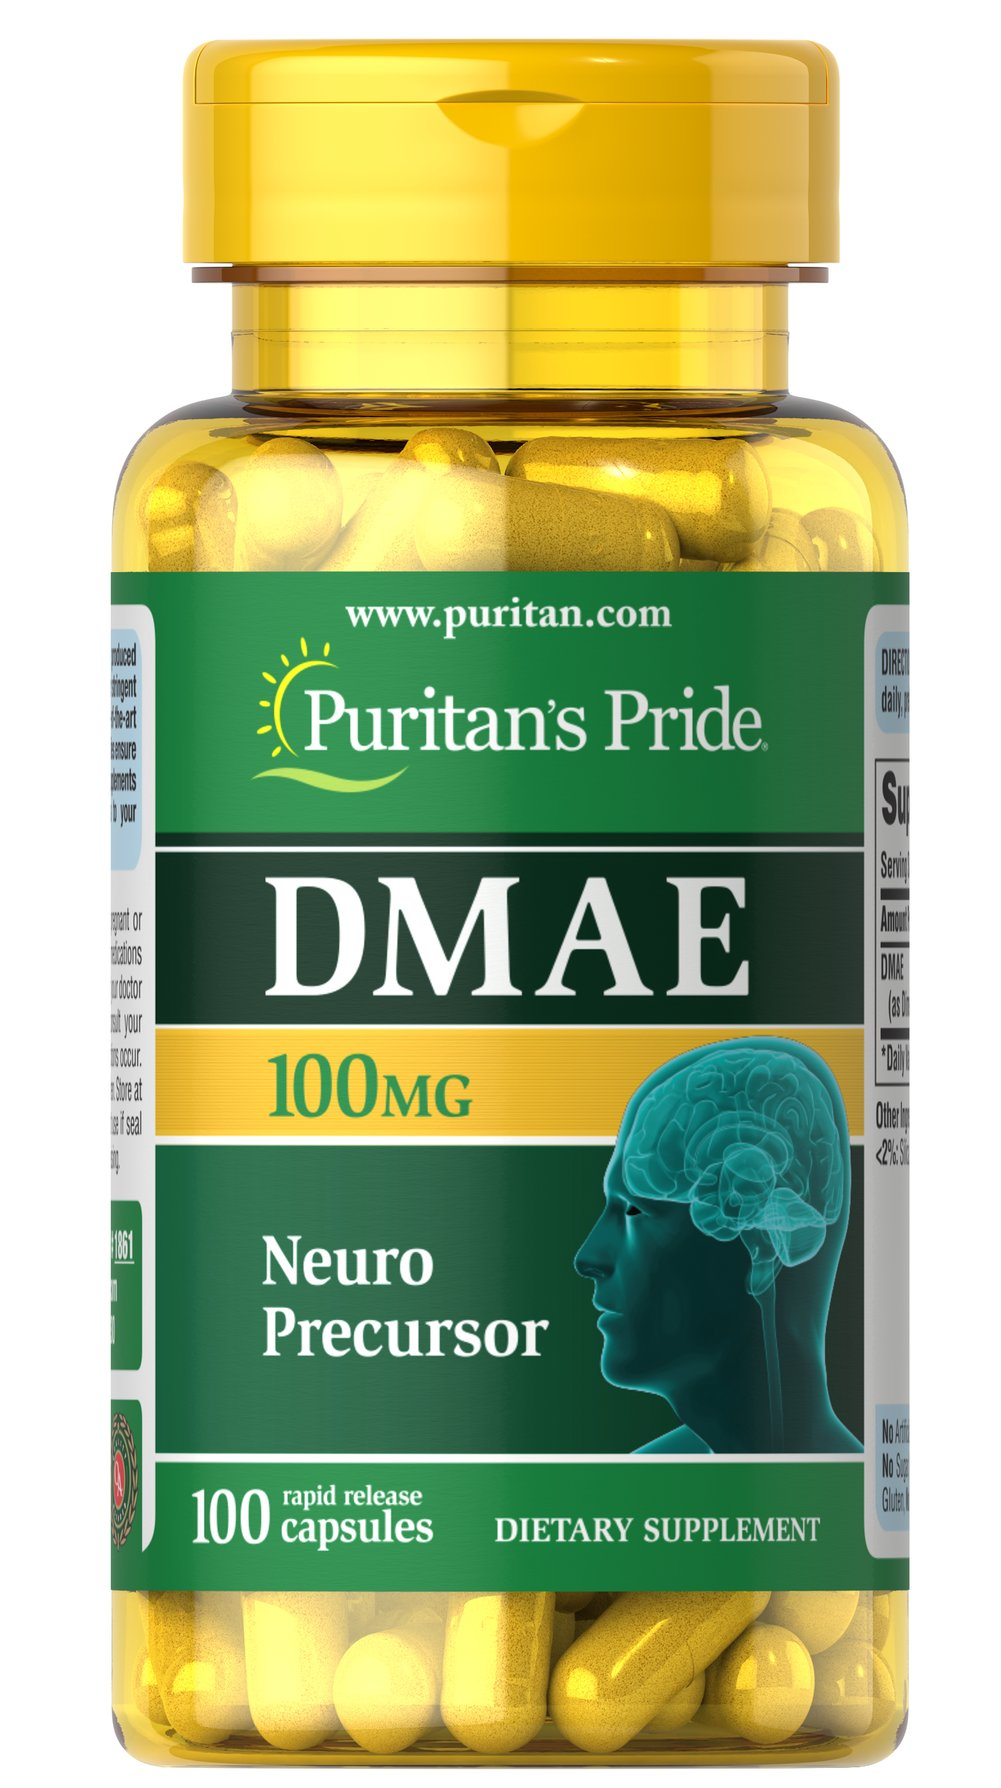 DMAE 100 mg Thumbnail Alternate Bottle View